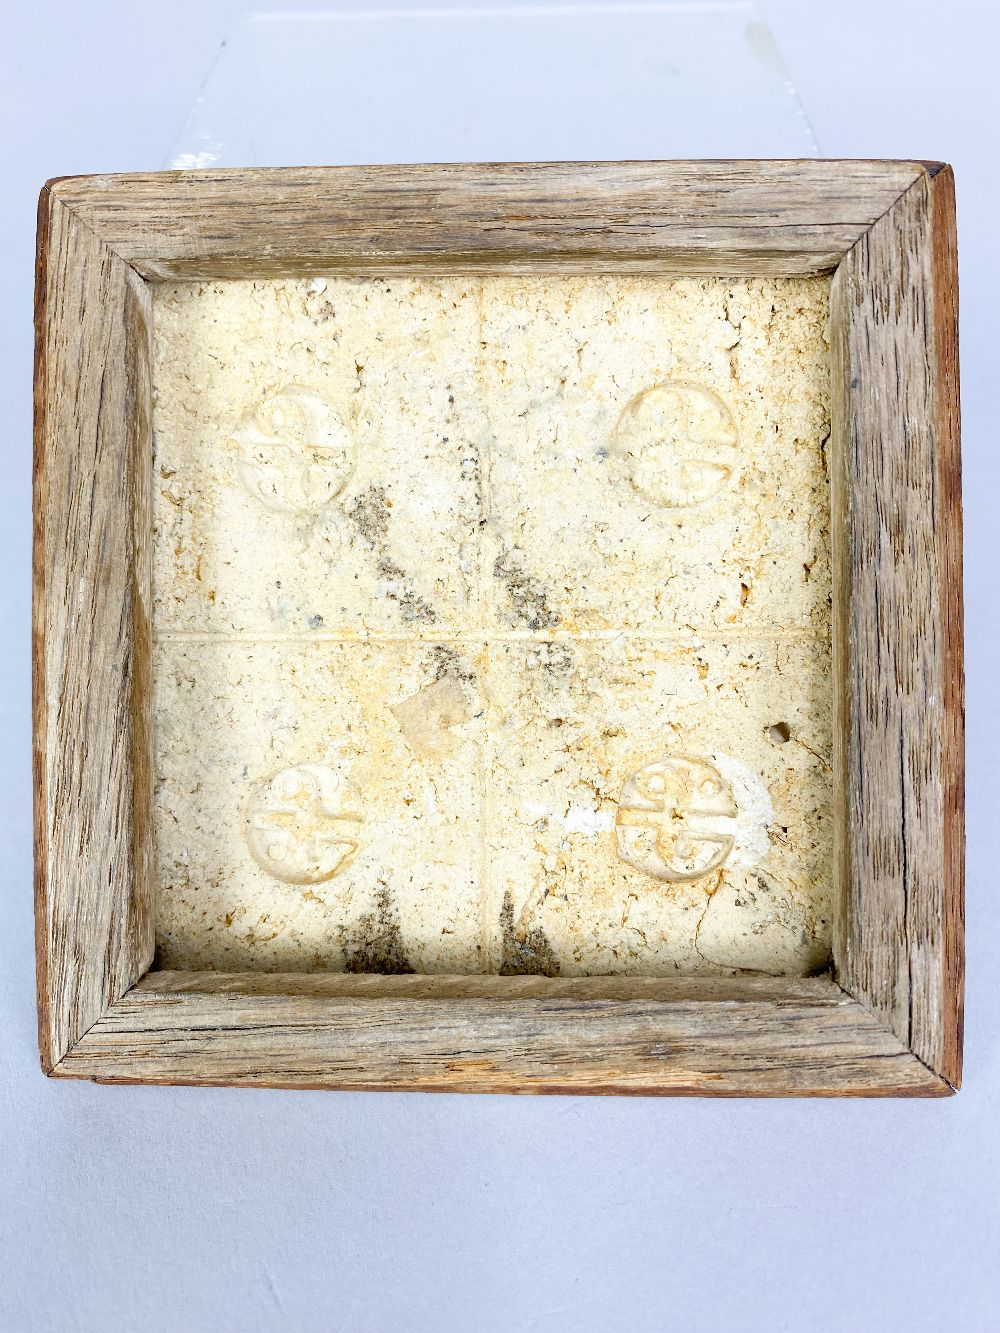 BERNARD LEACH (1887-1979) for Leach Pottery; a stoneware tile depicting ducks and reeds in - Image 4 of 4